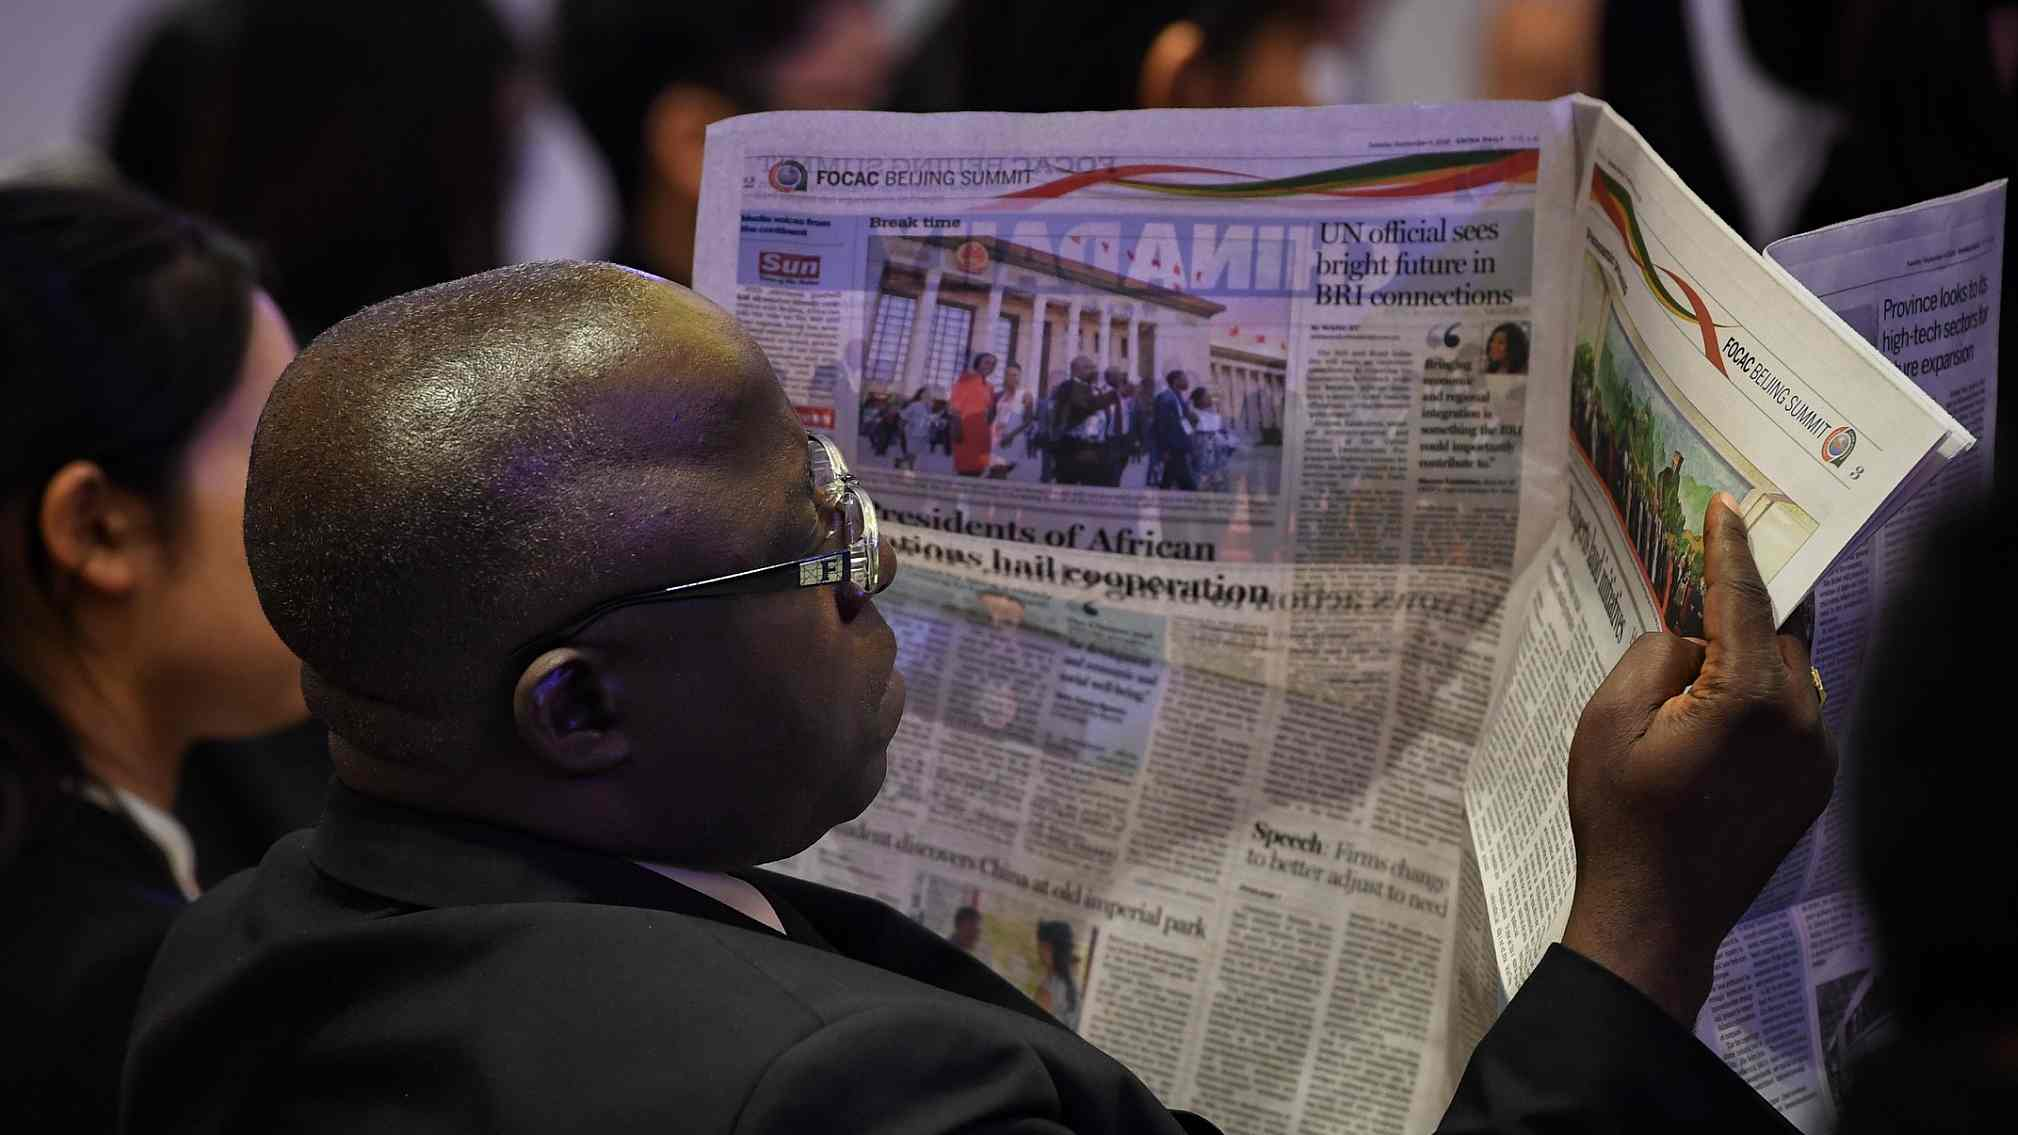 Chinese, African media discuss roles in building shared future